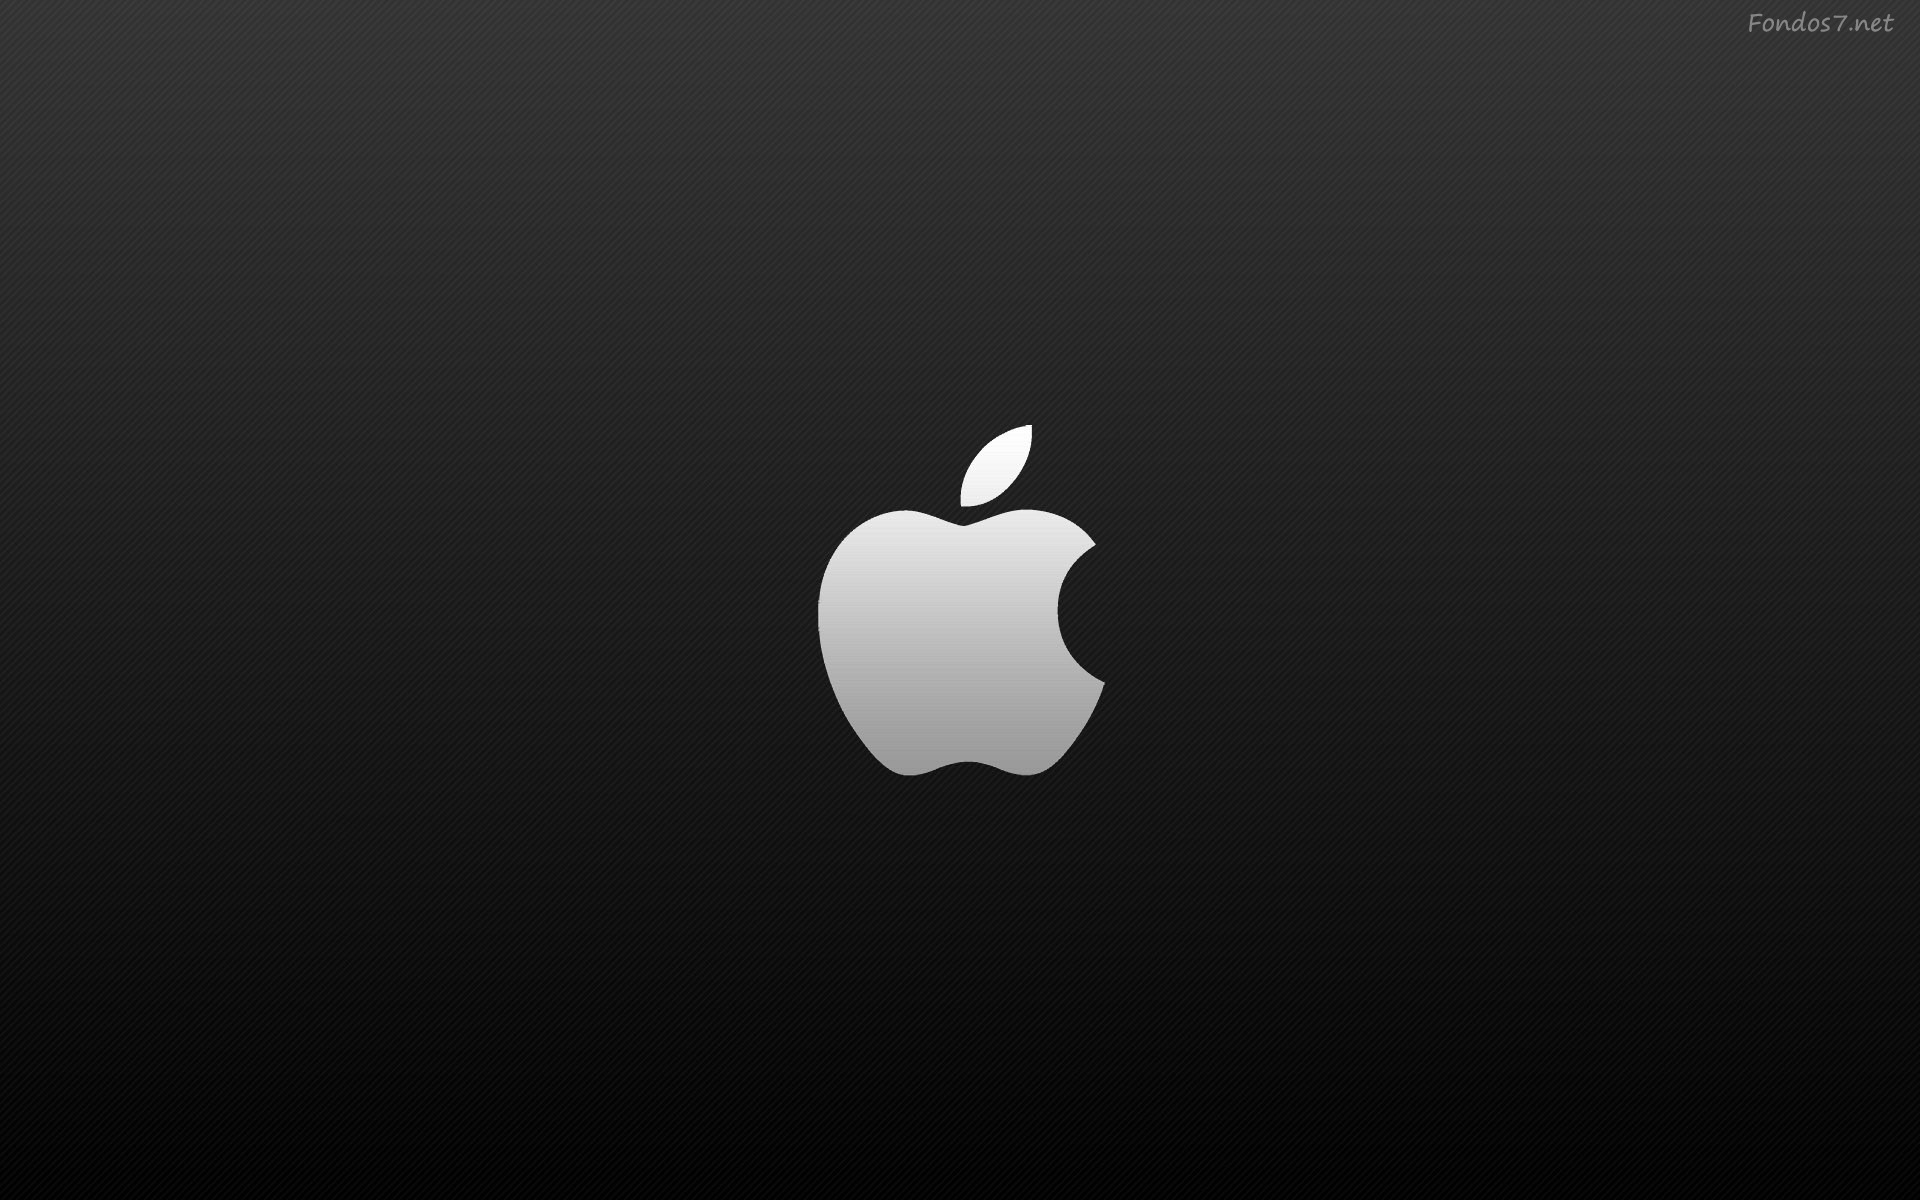 de pantalla logo de apple mac hd widescreen Gratis imagenes 2564 1920x1200